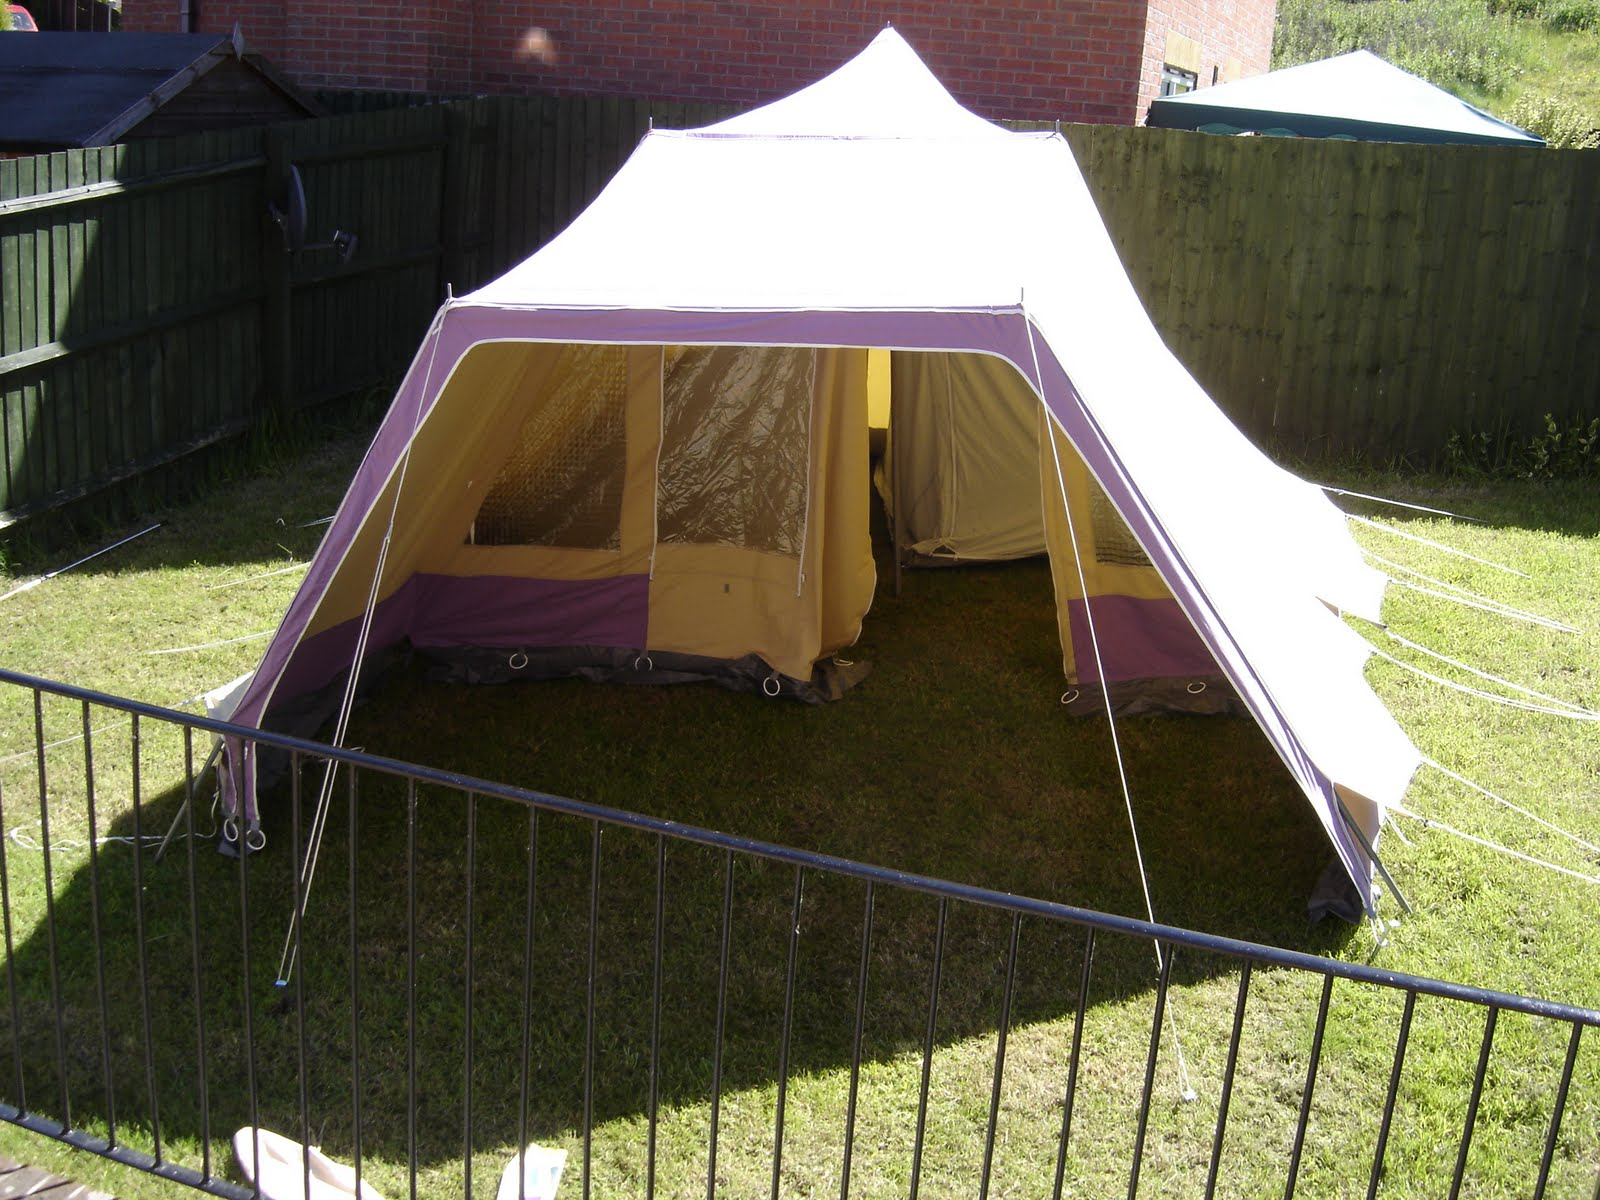 A New Tent & Owl Family Diary: A New Tent